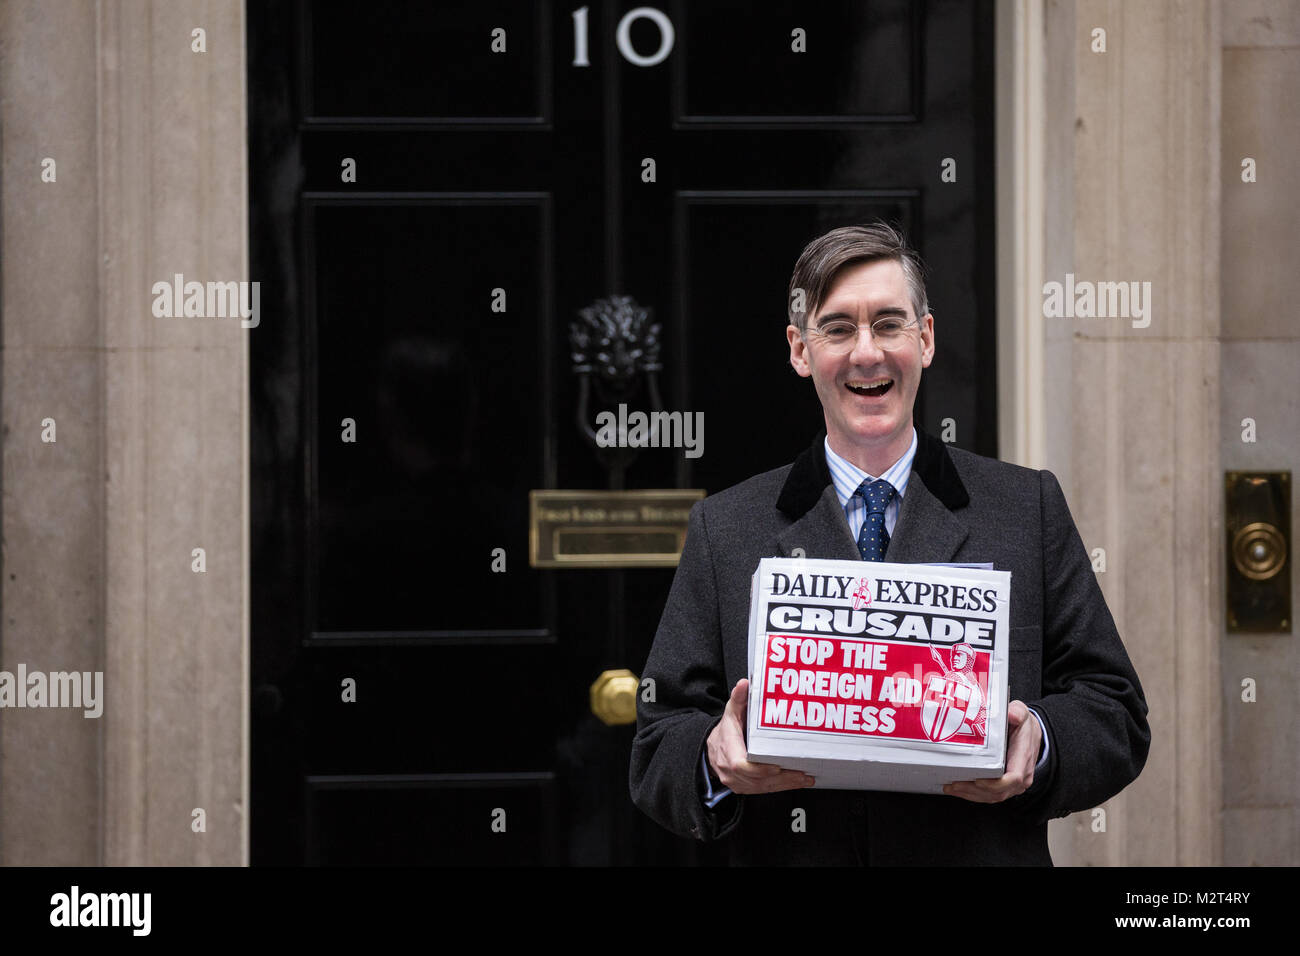 London, UK. 8th February, 2018. Jacob Rees-Mogg, Conservative MP for North East Somerset, stands outside 10 Downing - Stock Image